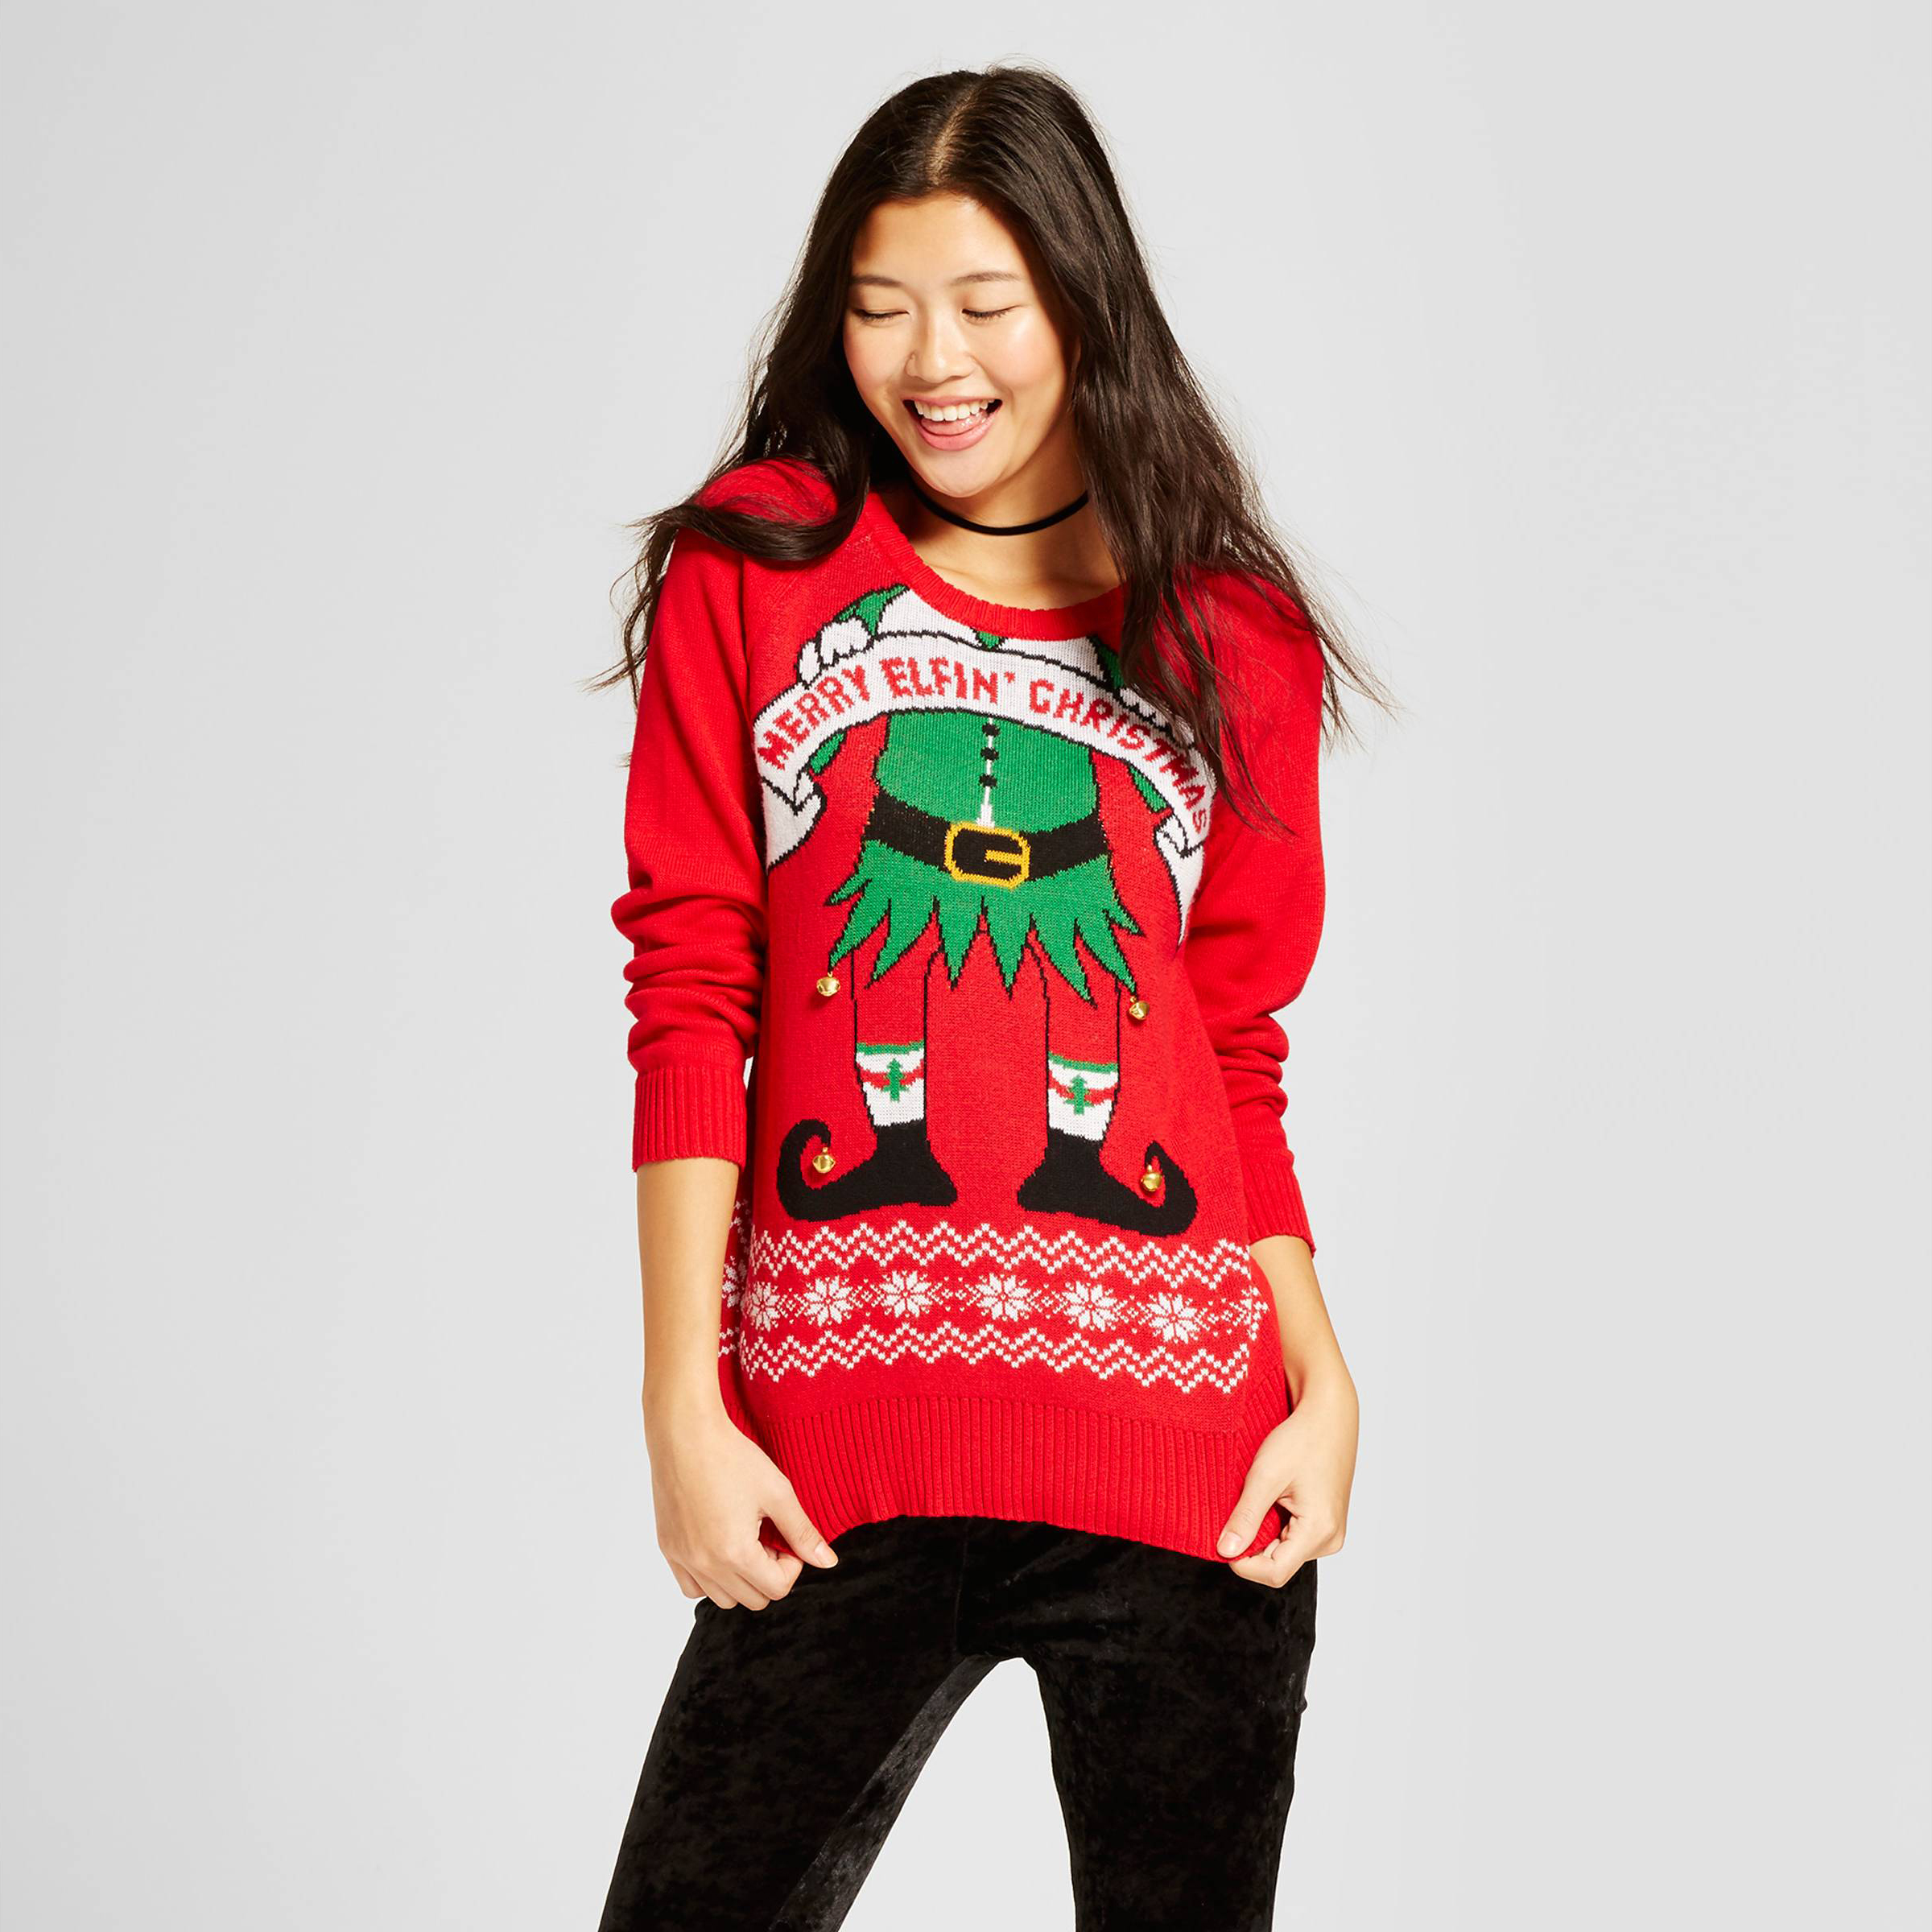 Horrible Christmas Sweaters.10 Ugly Christmas Sweaters That Are Actually Kind Of Cute